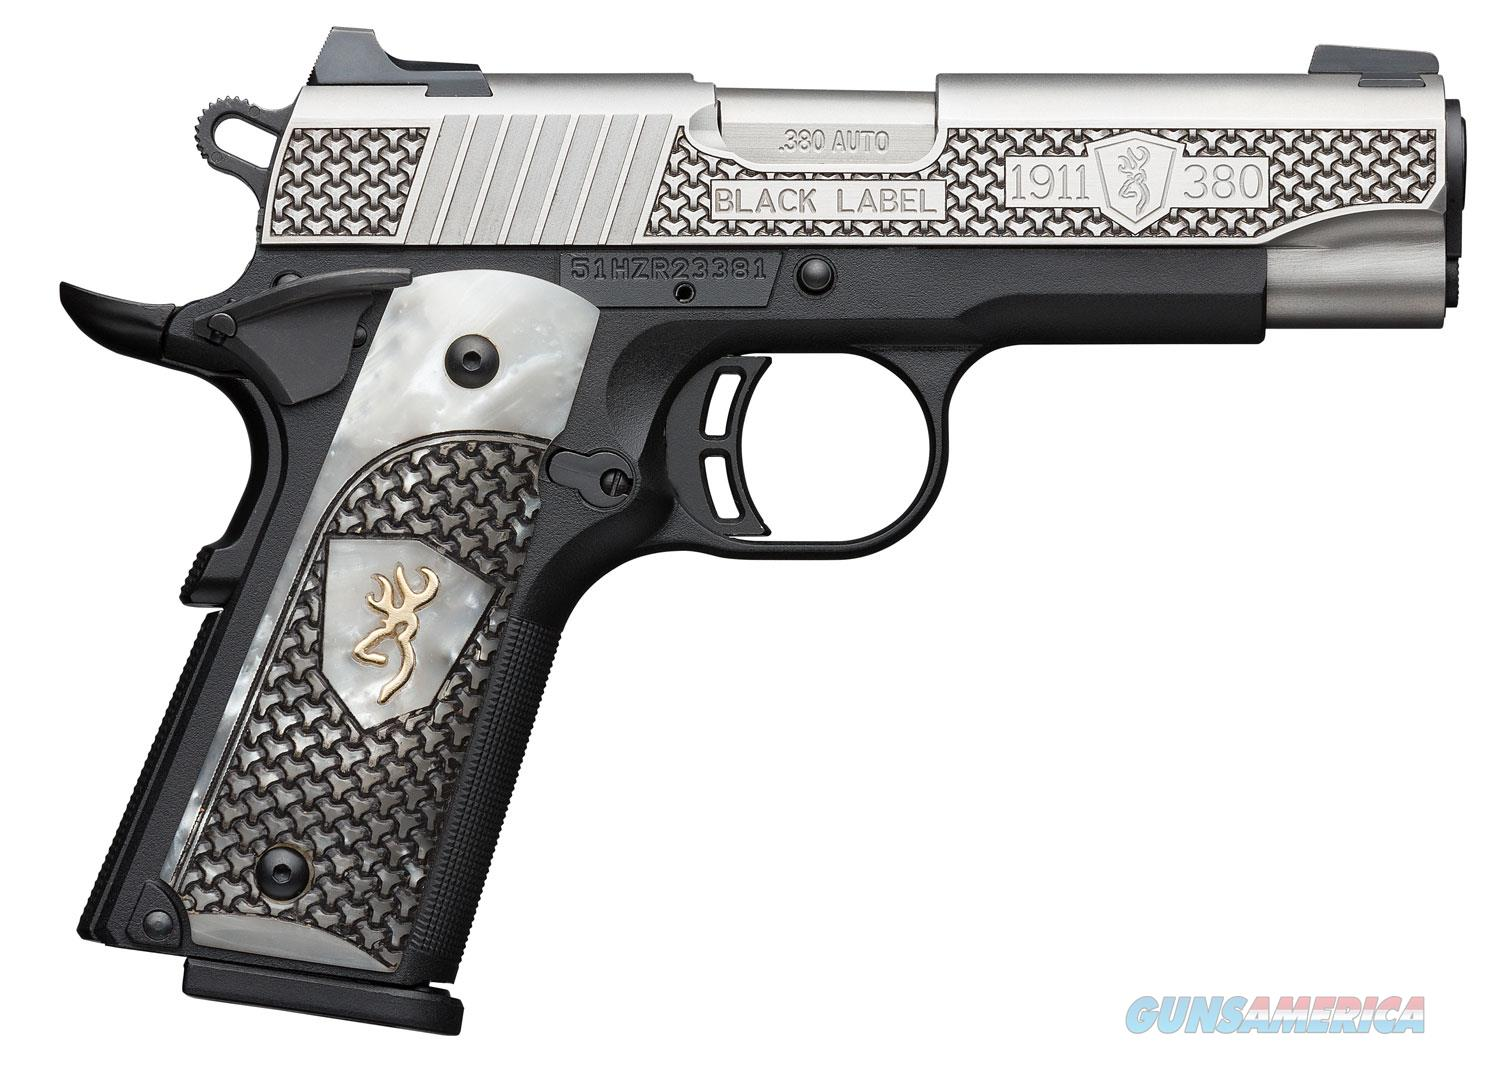 Browning 1911 380ACP Pistol - White Pearl Engraved Grip  Guns > Pistols > Browning Pistols > Other Autos